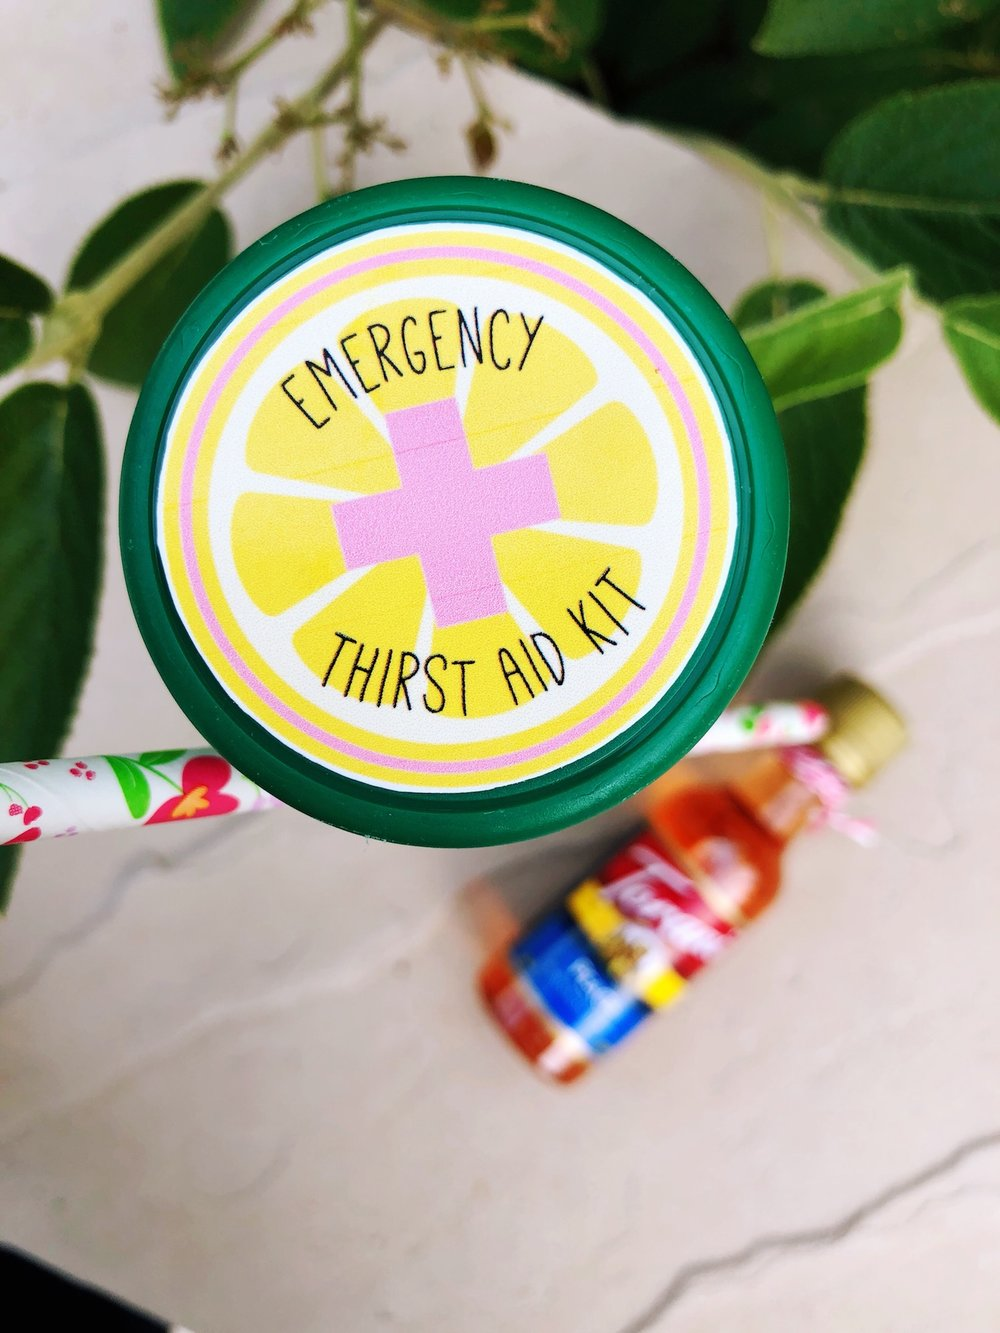 Emergency Thirst Aid Kit_Lemonade Printable_Drink Party Favor Summer_Design Organize Party.JPG